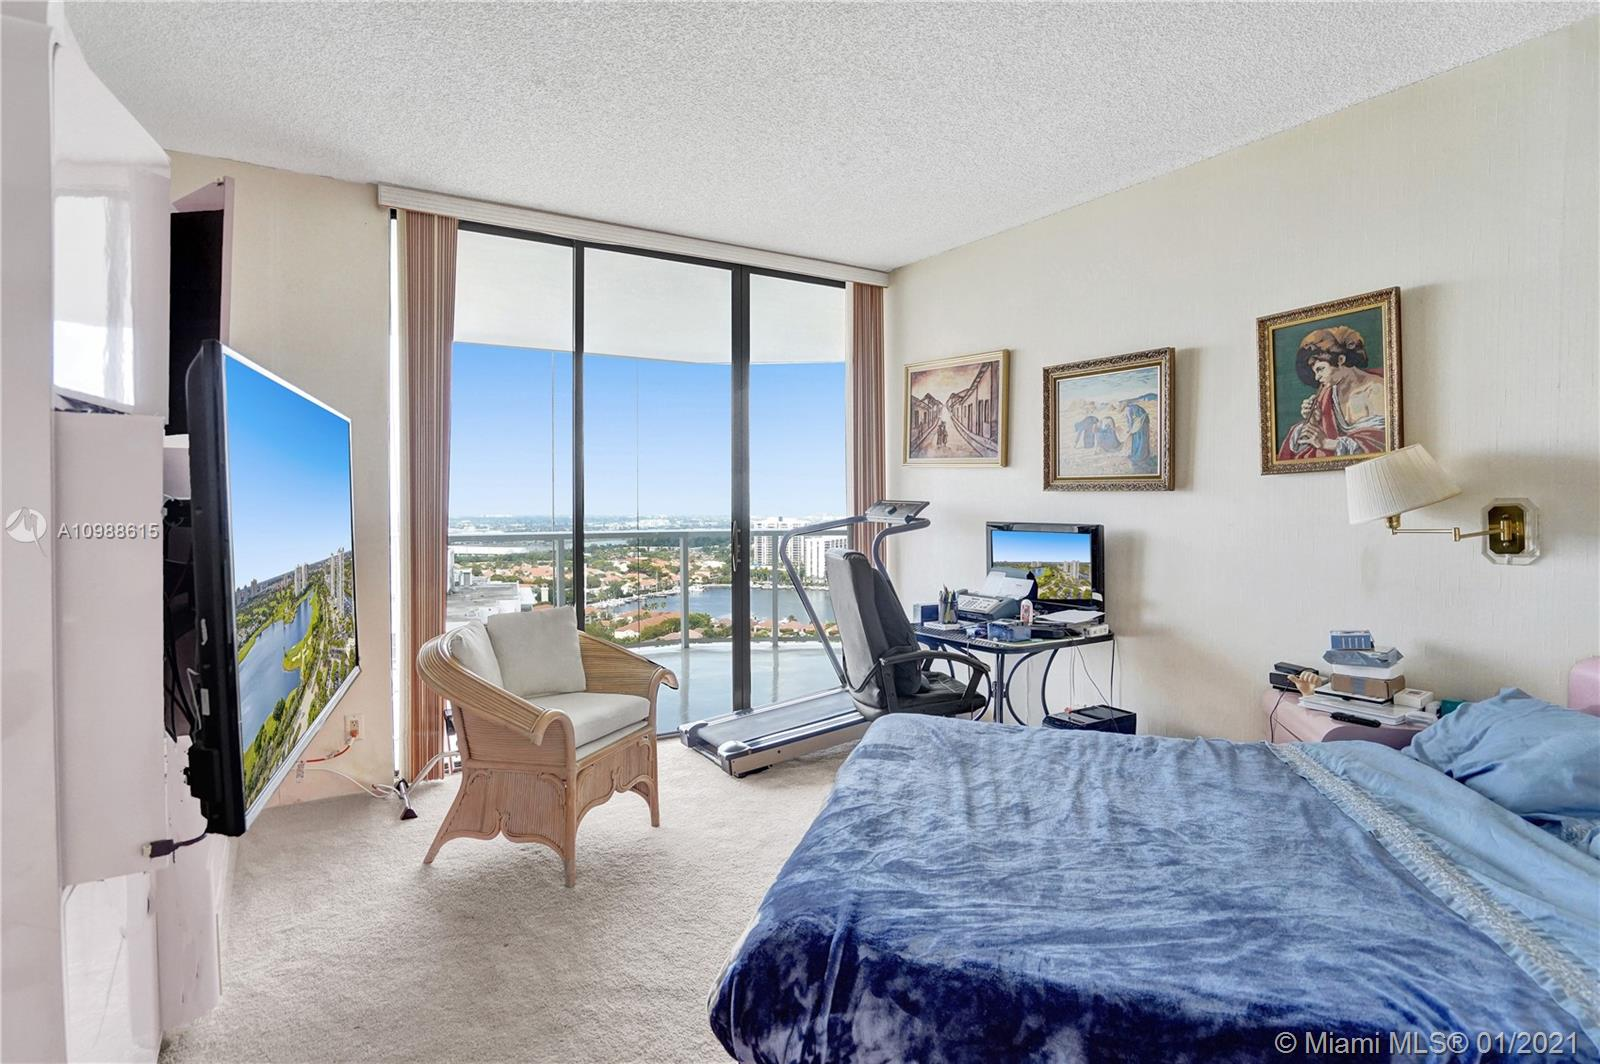 Photo of 20281 Country Club Dr #2407, Aventura, Florida, 33180 - Imagine having breakfast with this view.